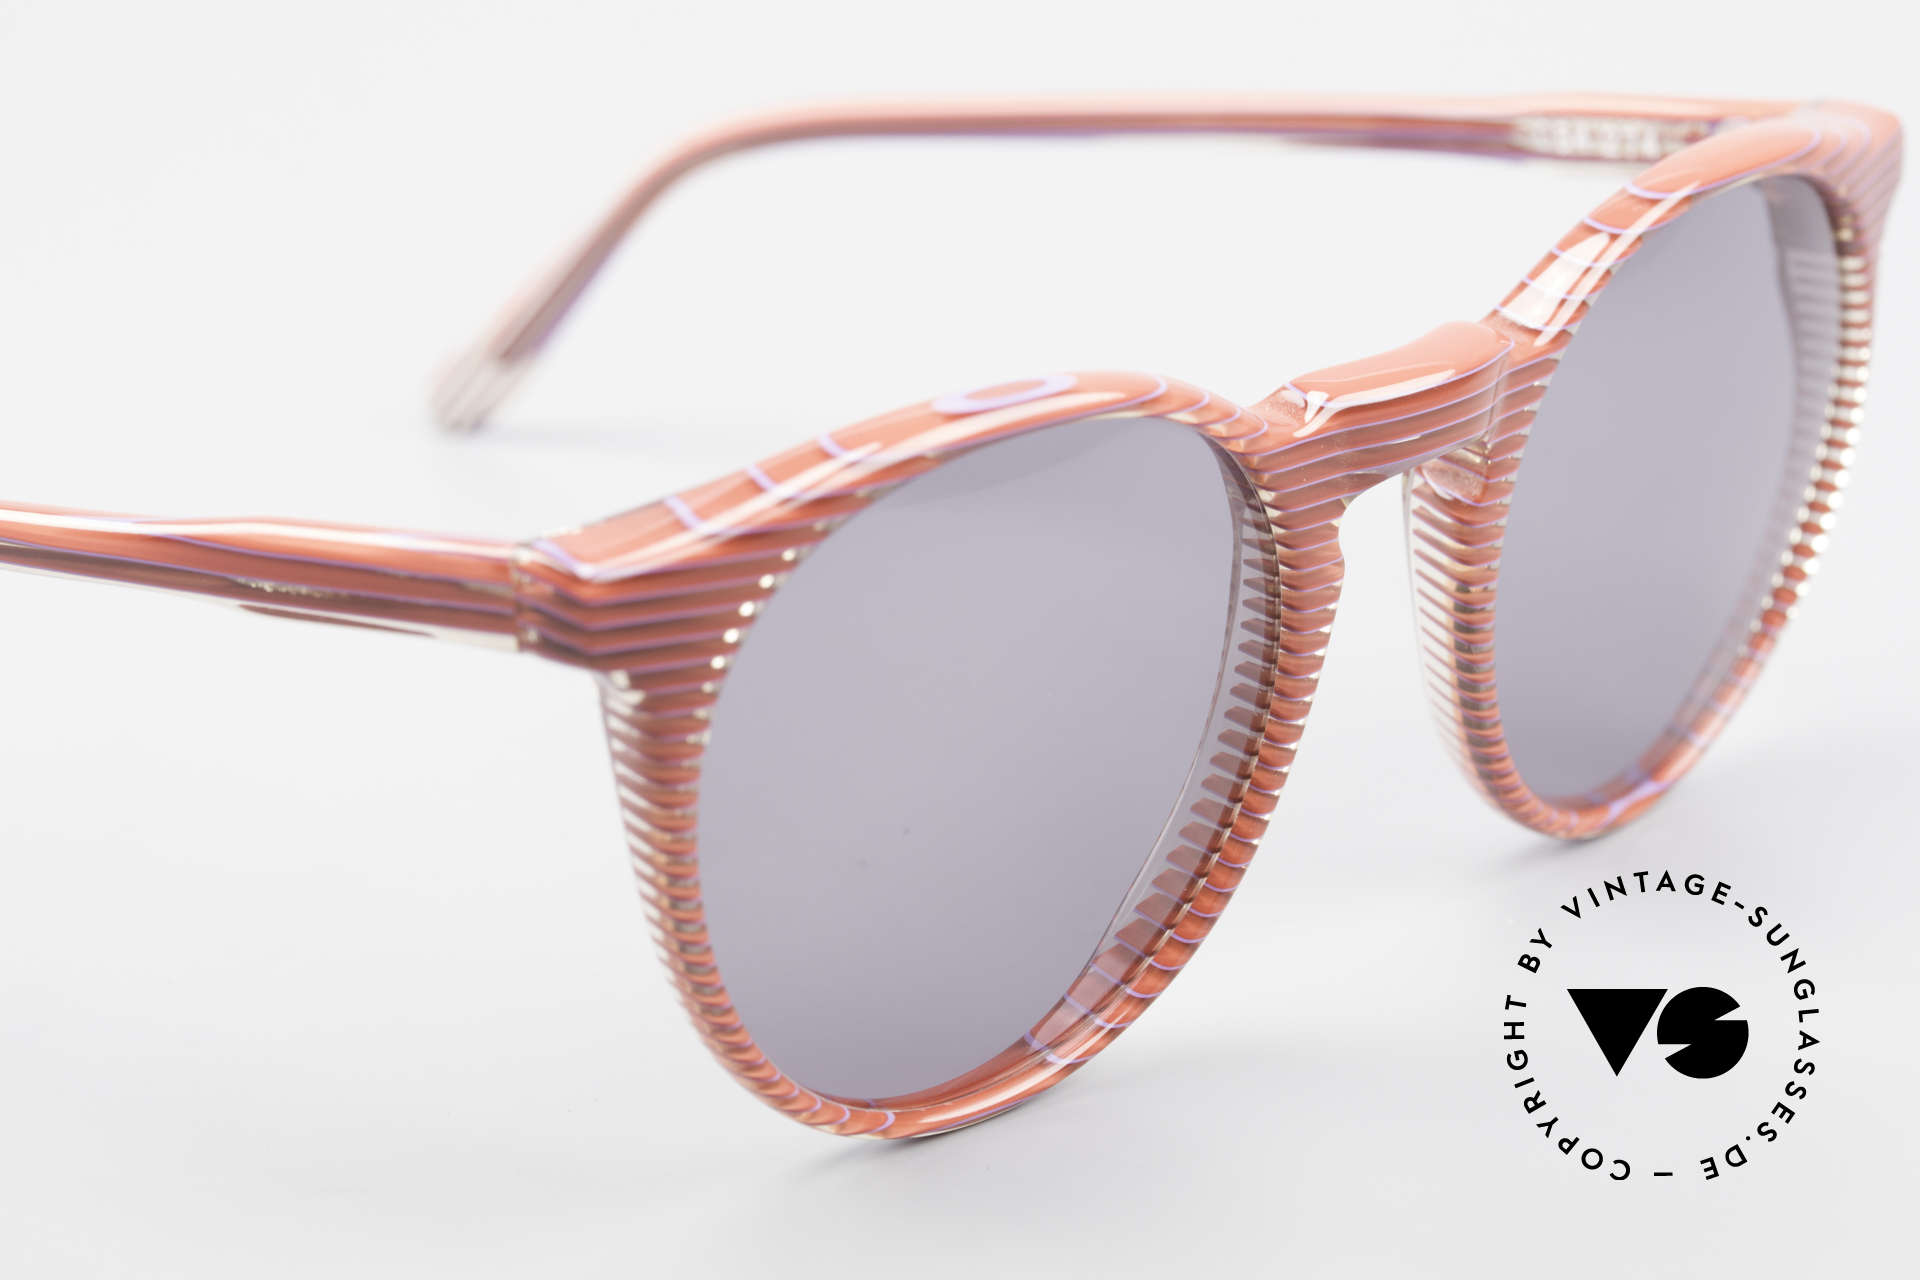 Alain Mikli 034 / 274 80's Ladies Panto Sunglasses, the sun lenses could be replaced with prescriptions, Made for Women